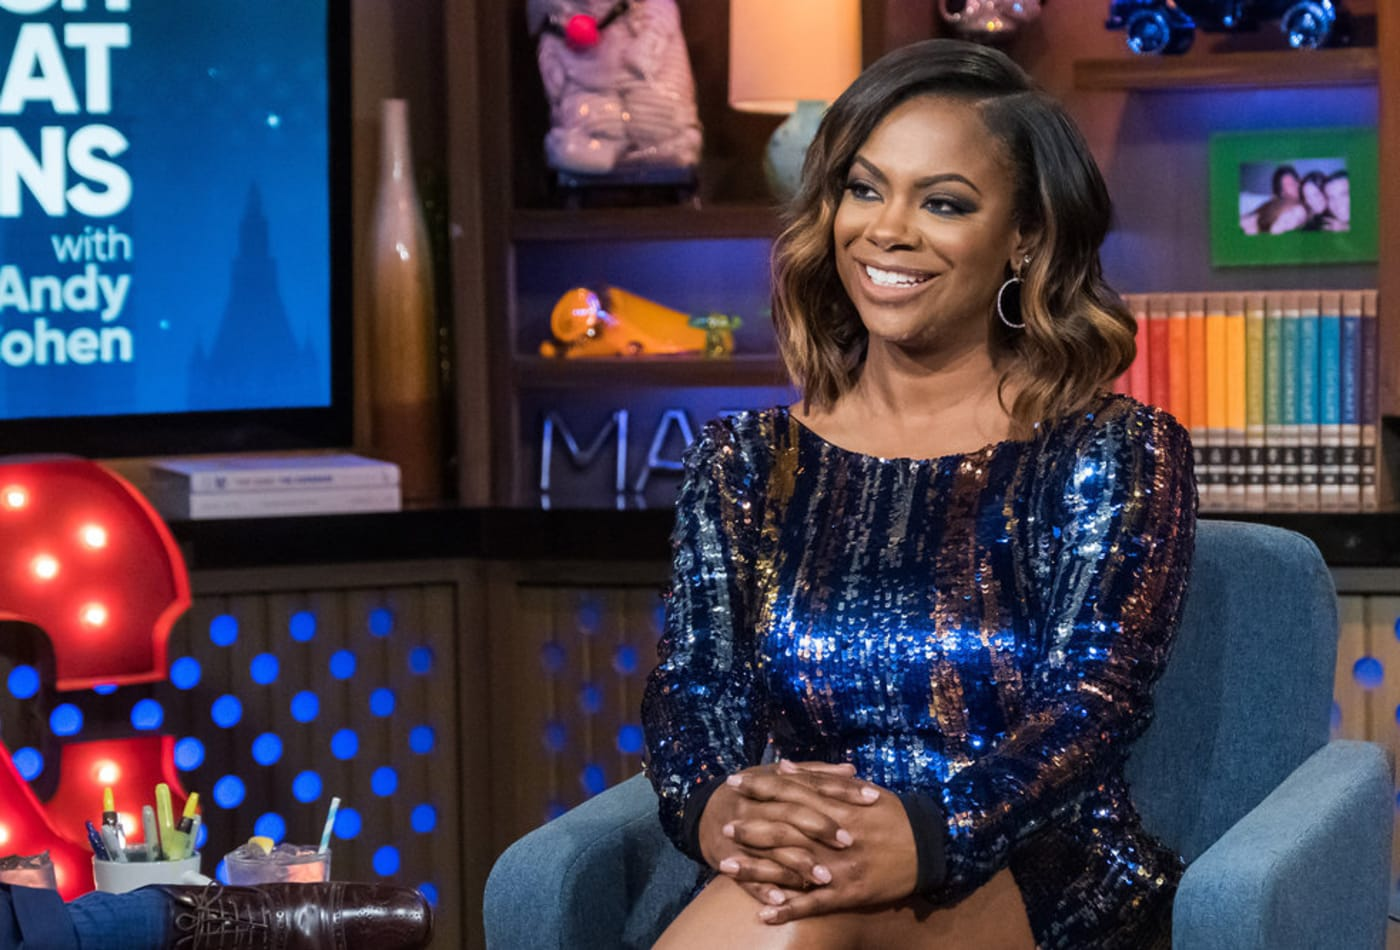 kandi-burruss-shares-halloween-family-photos-check-them-out-here